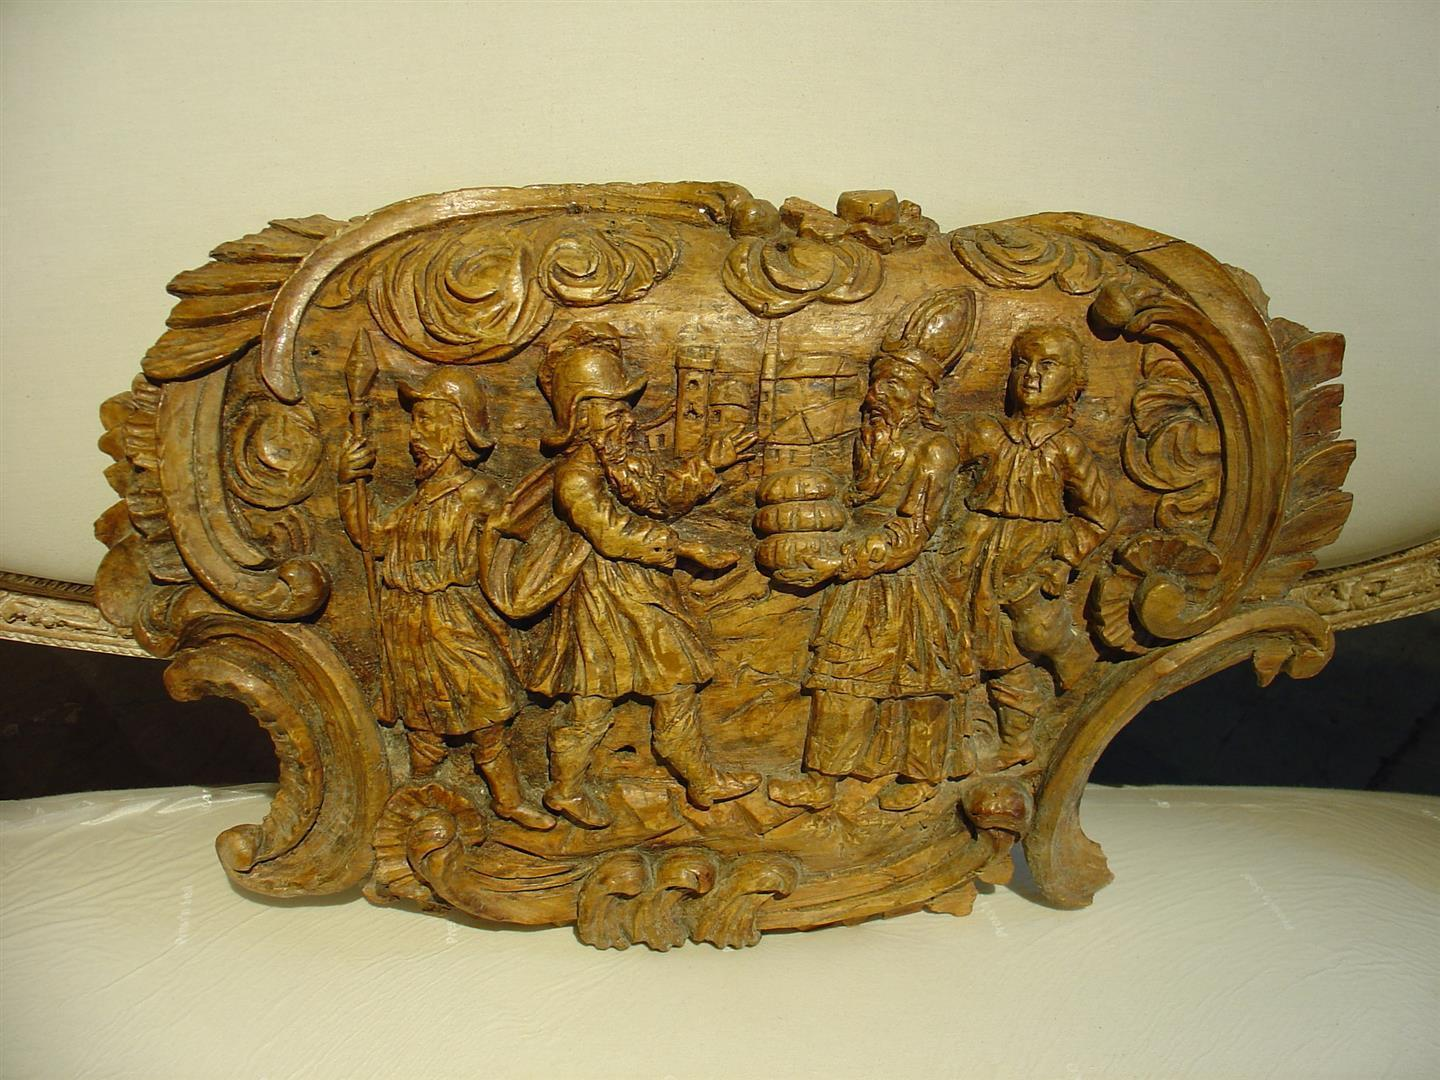 Unusual 17th Century Wood Carving Sculpture from Northern France